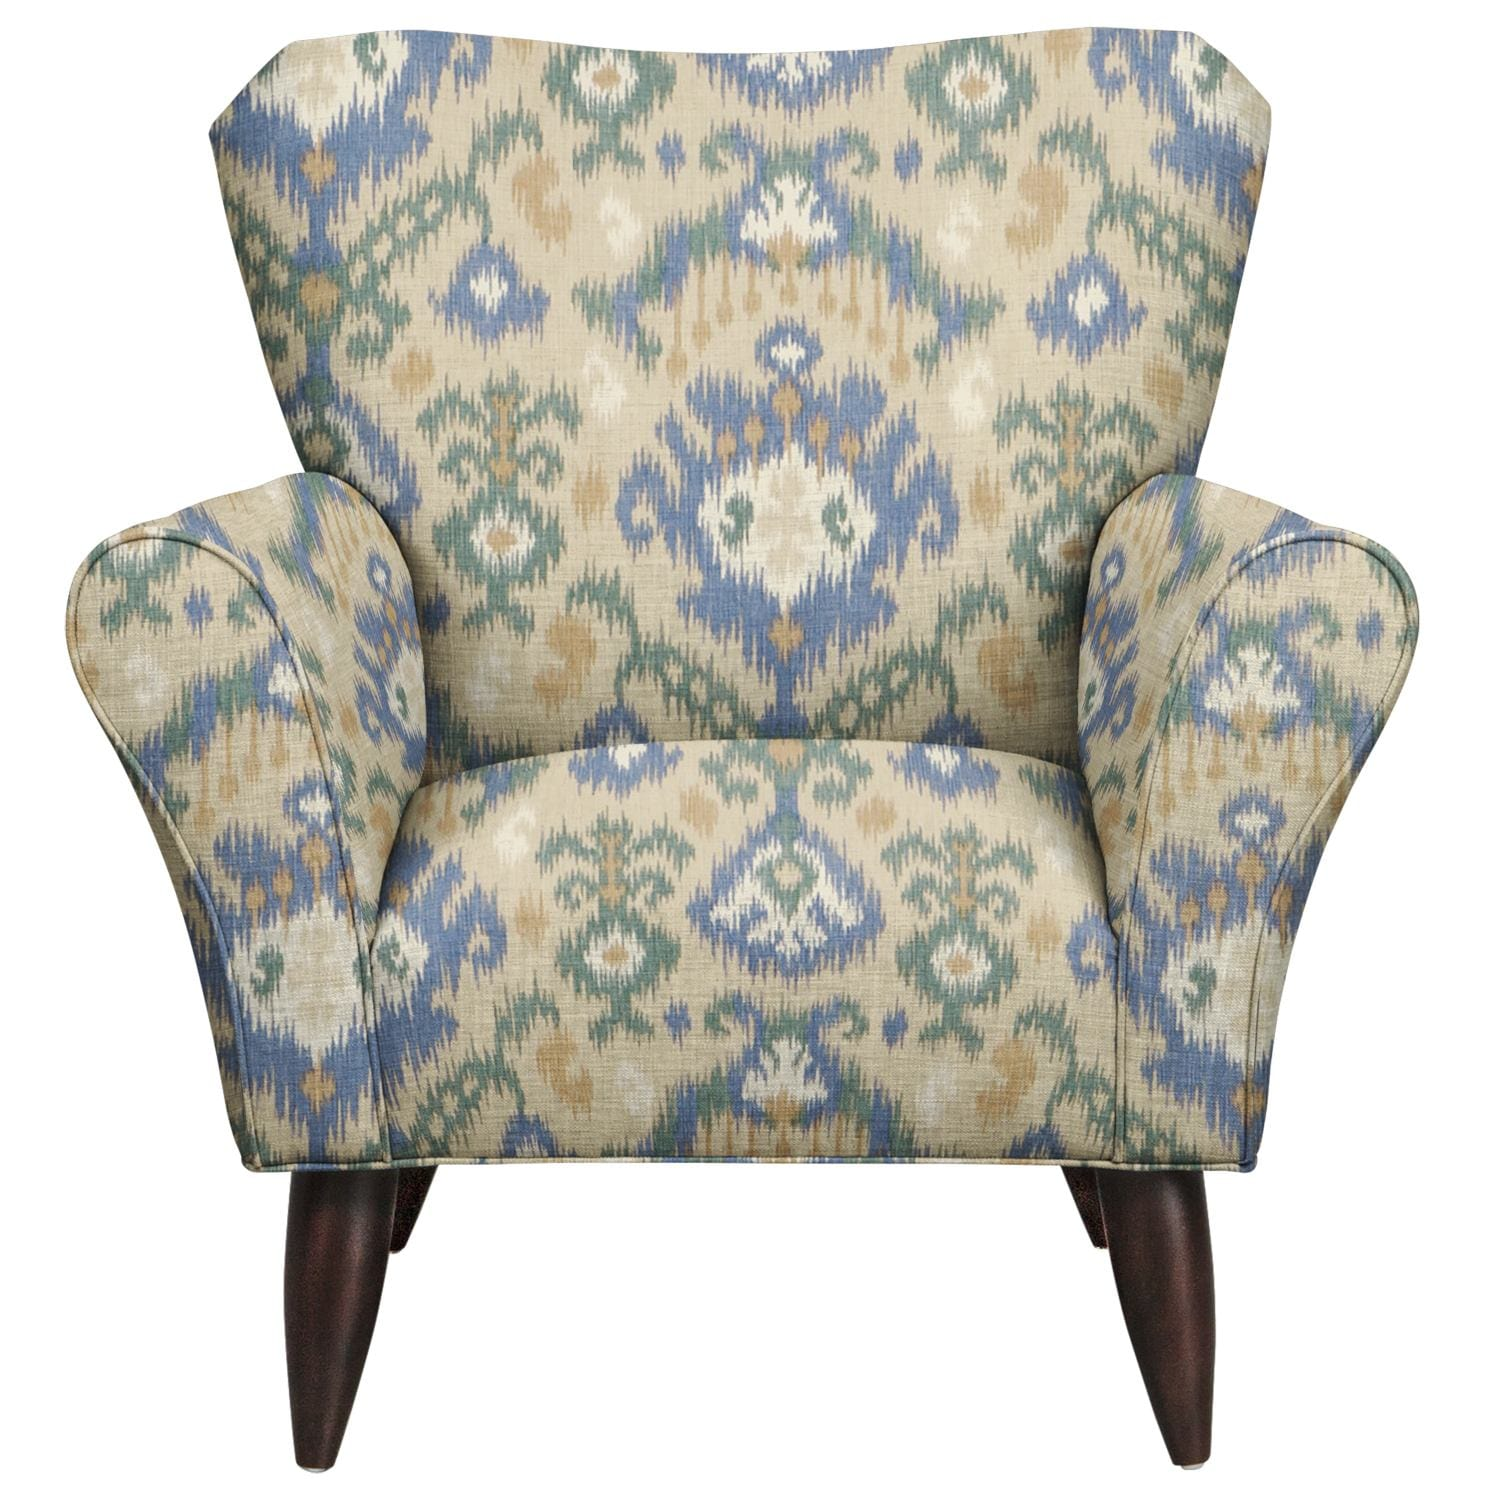 Living Room Furniture - Jessie Chair w/ Blurred Lines Big Sky Fabric